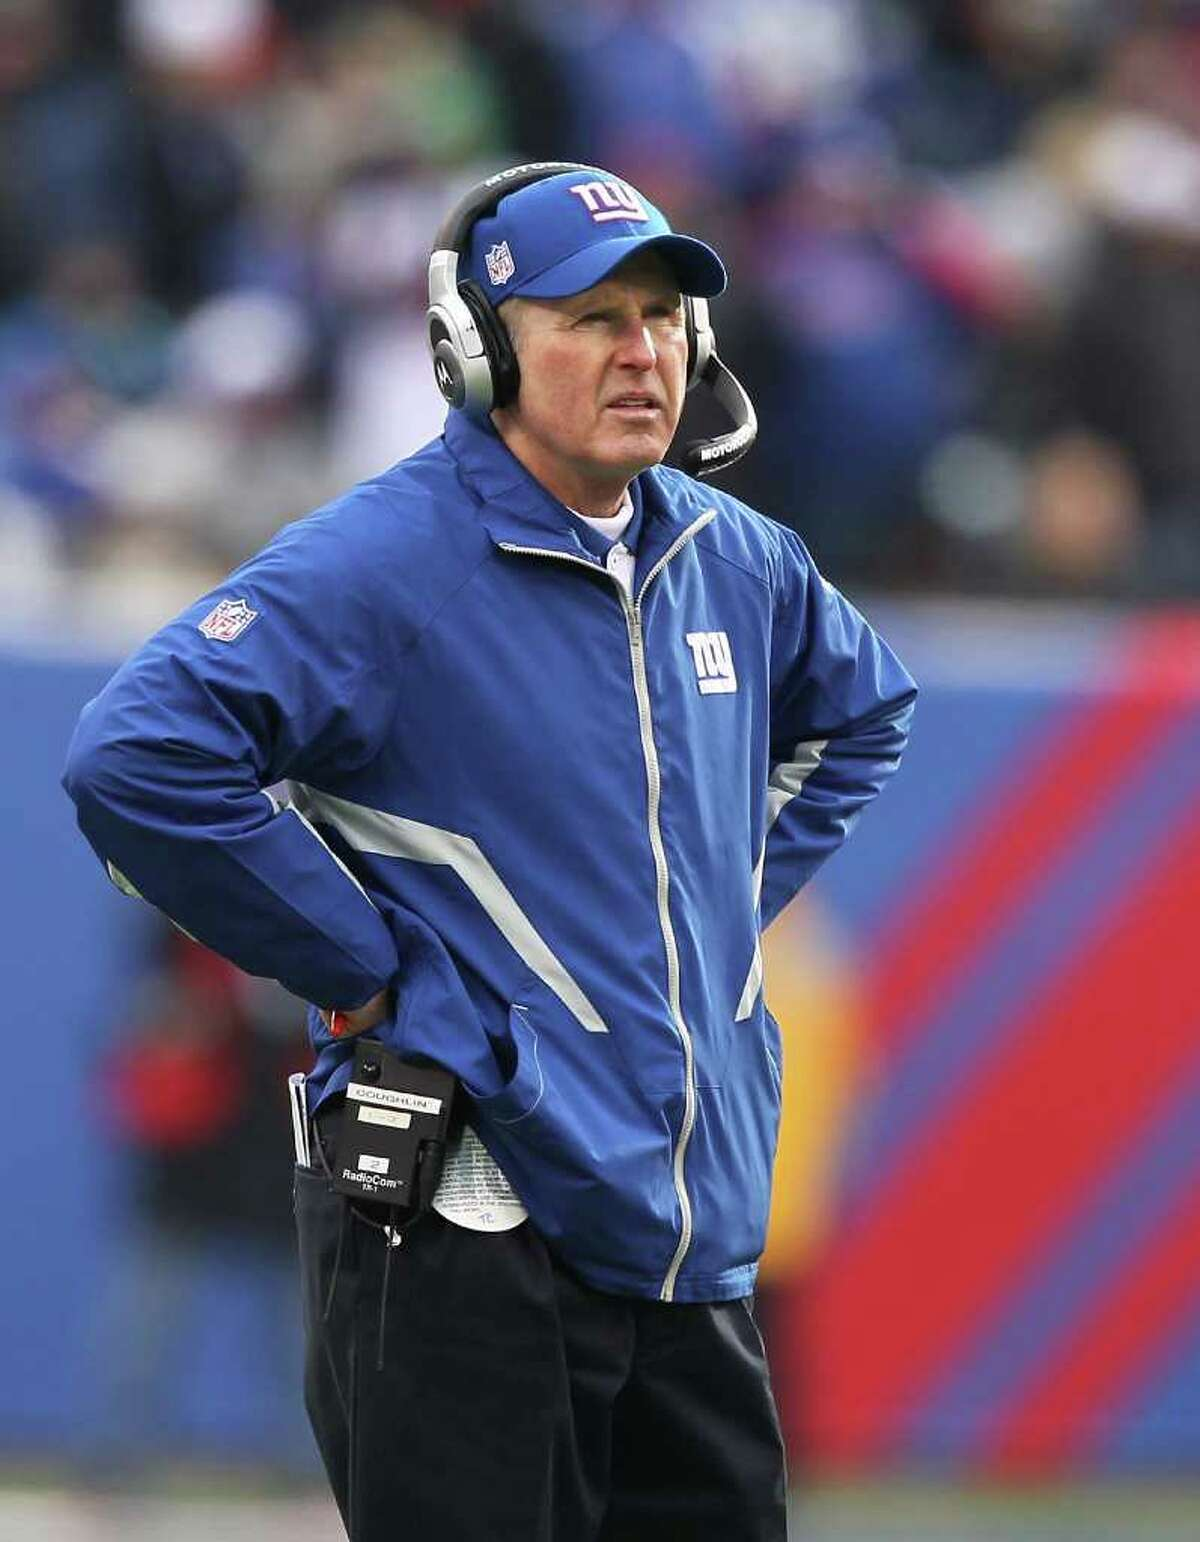 EAST RUTHERFORD, NJ - DECEMBER 19: Tom Coughlin, Head Coach of the New York Giants looks on against the Philadelphia Eagles during their game on December 19, 2010 at The New Meadowlands Stadium in East Rutherford, New Jersey. (Photo by Al Bello/Getty Images) *** Local Caption *** Tom Coughlin